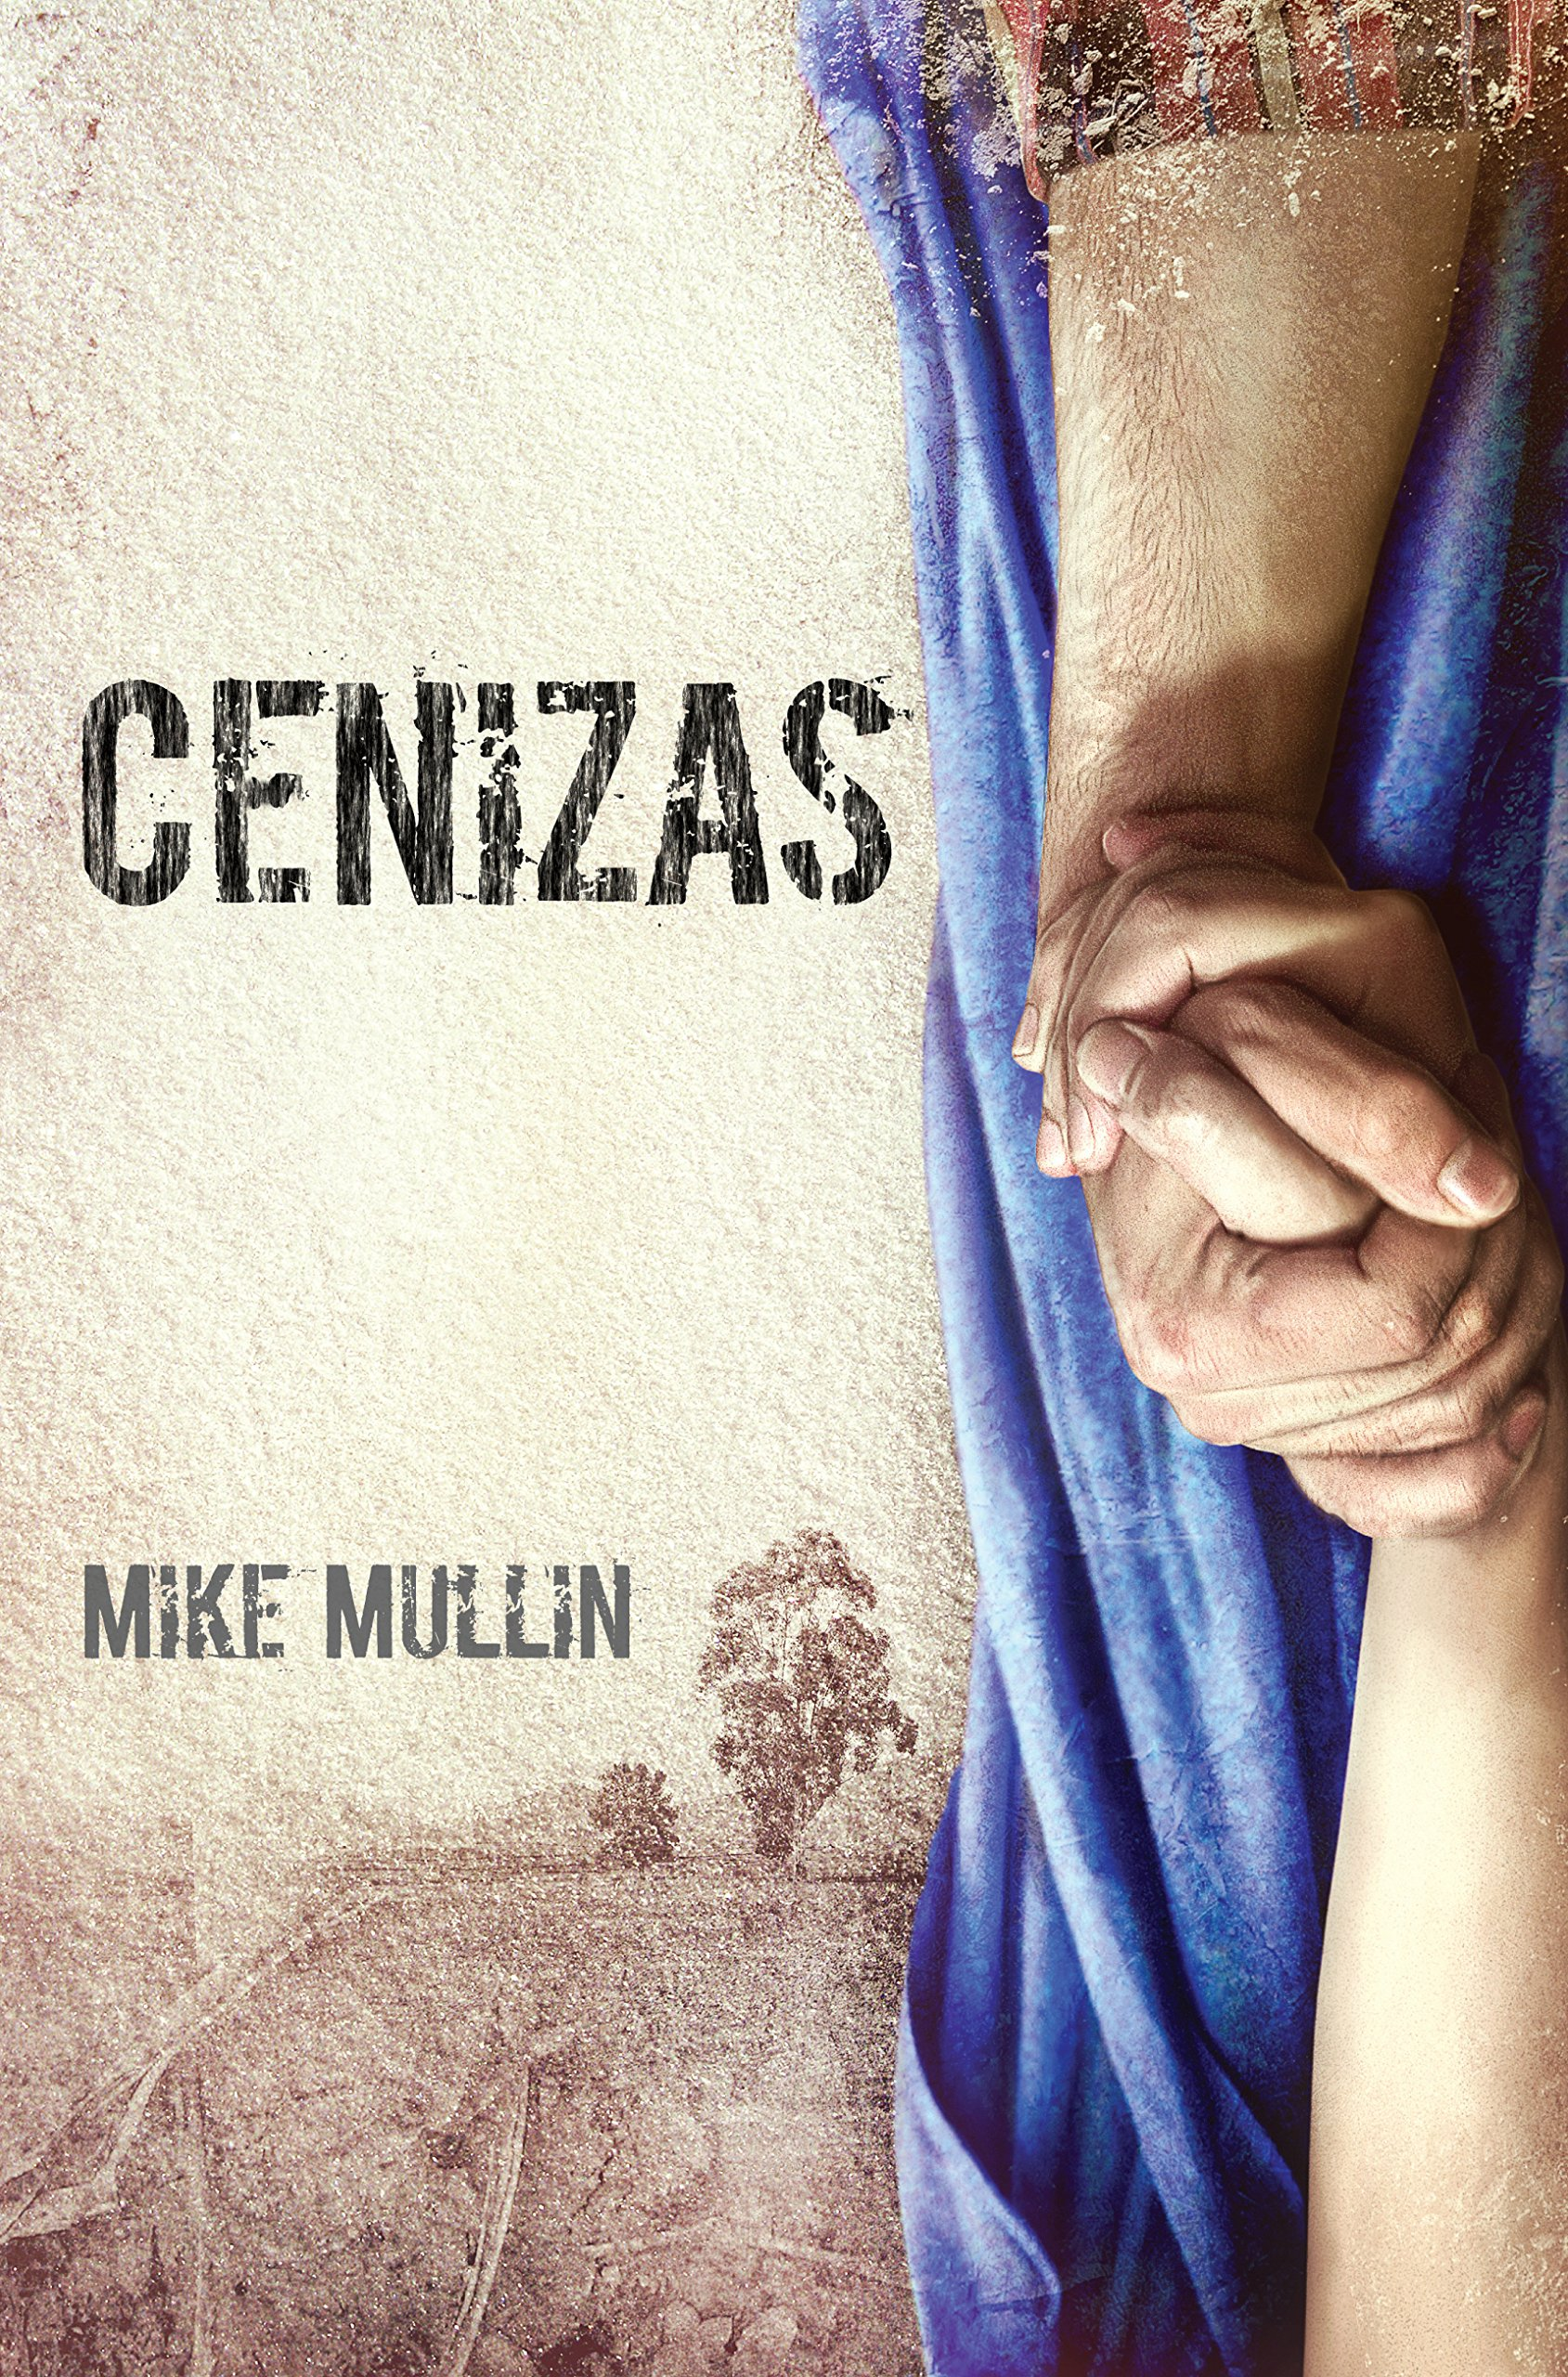 Amazon.com: La caída de la ceniza (Spanish Edition) (9781939100221): Mike Mullin: Books